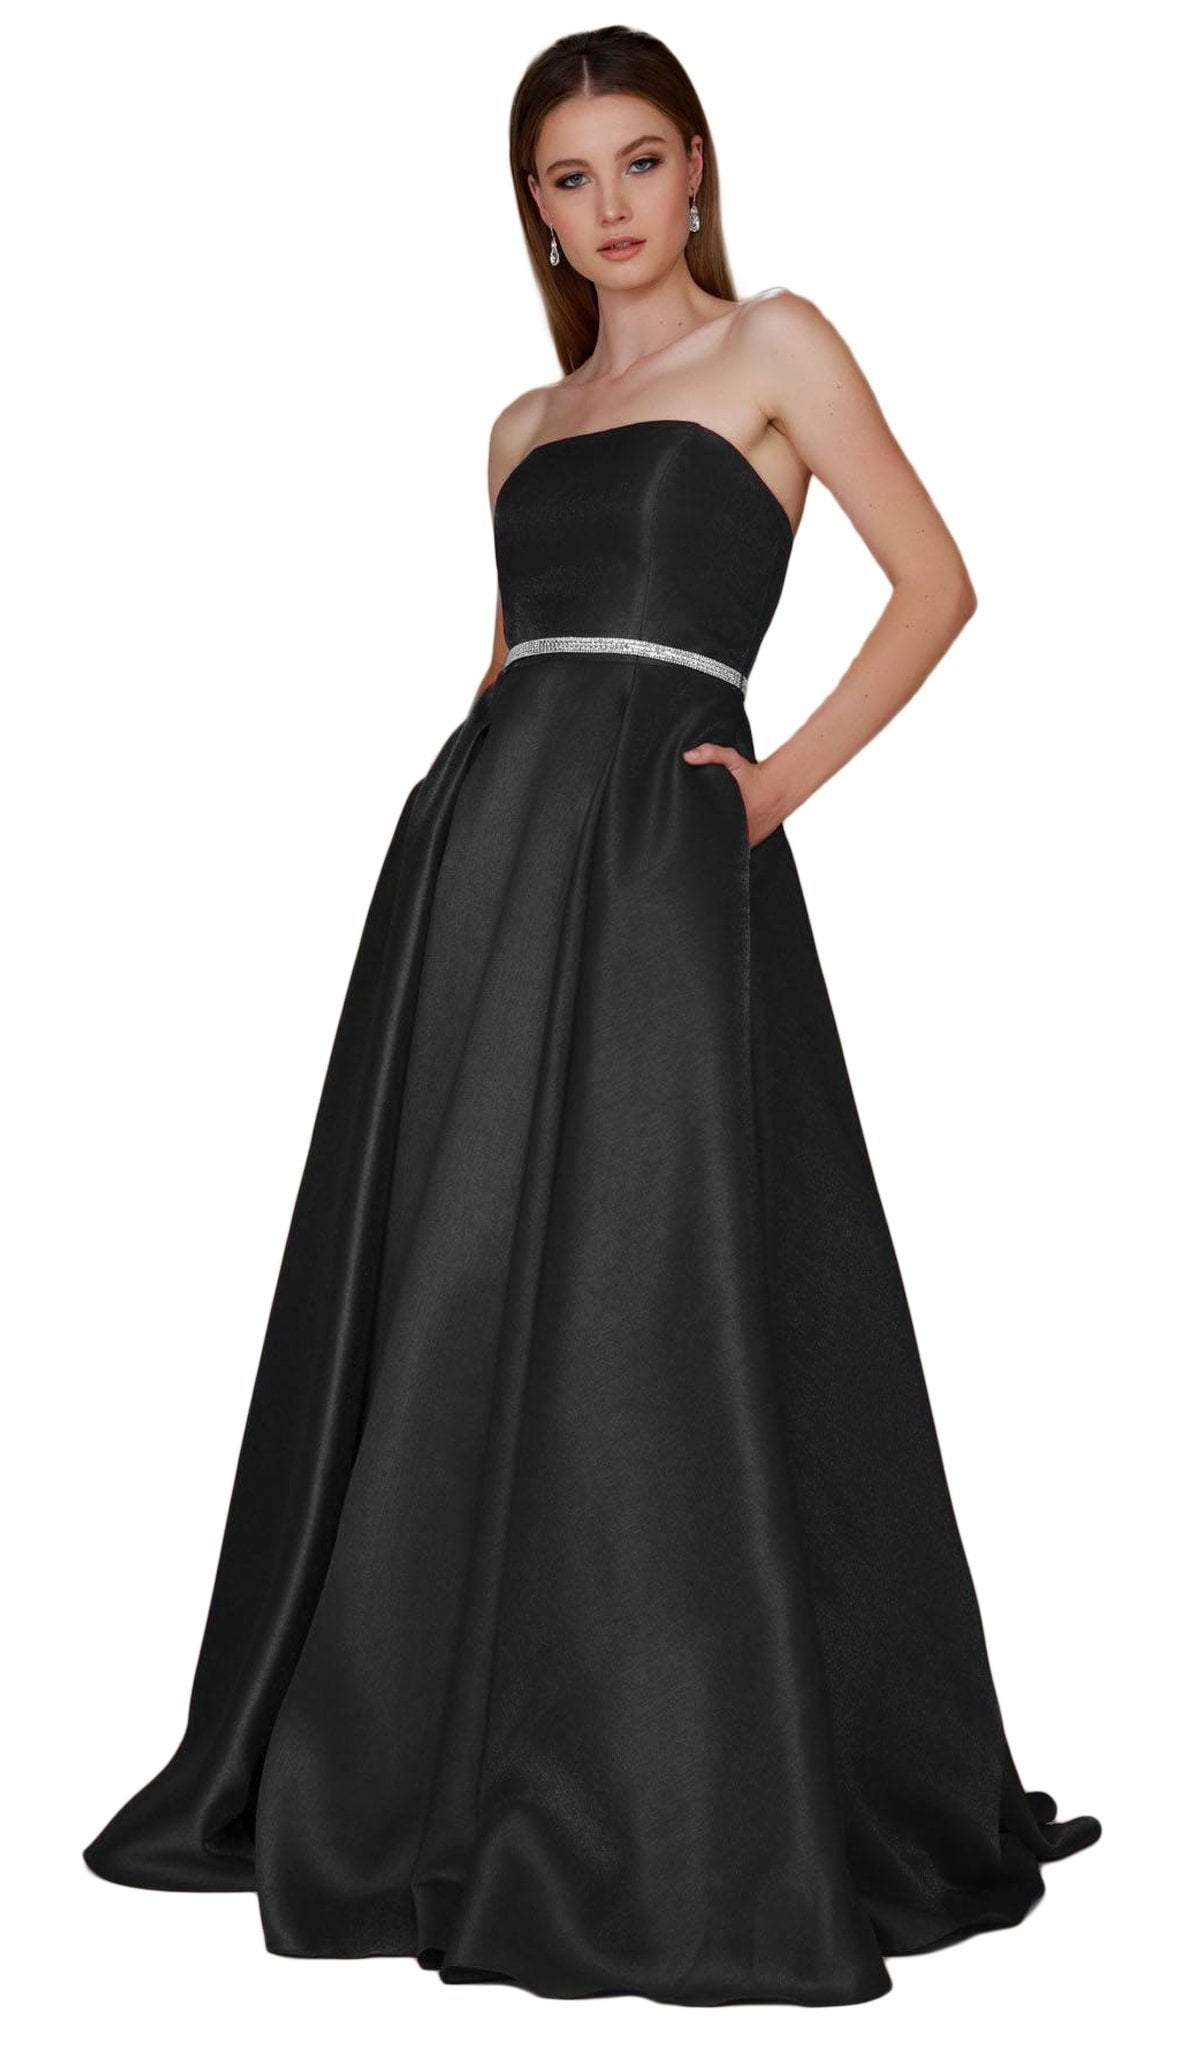 Nox Anabel - Strapless A-Line Evening Gown Y154SC